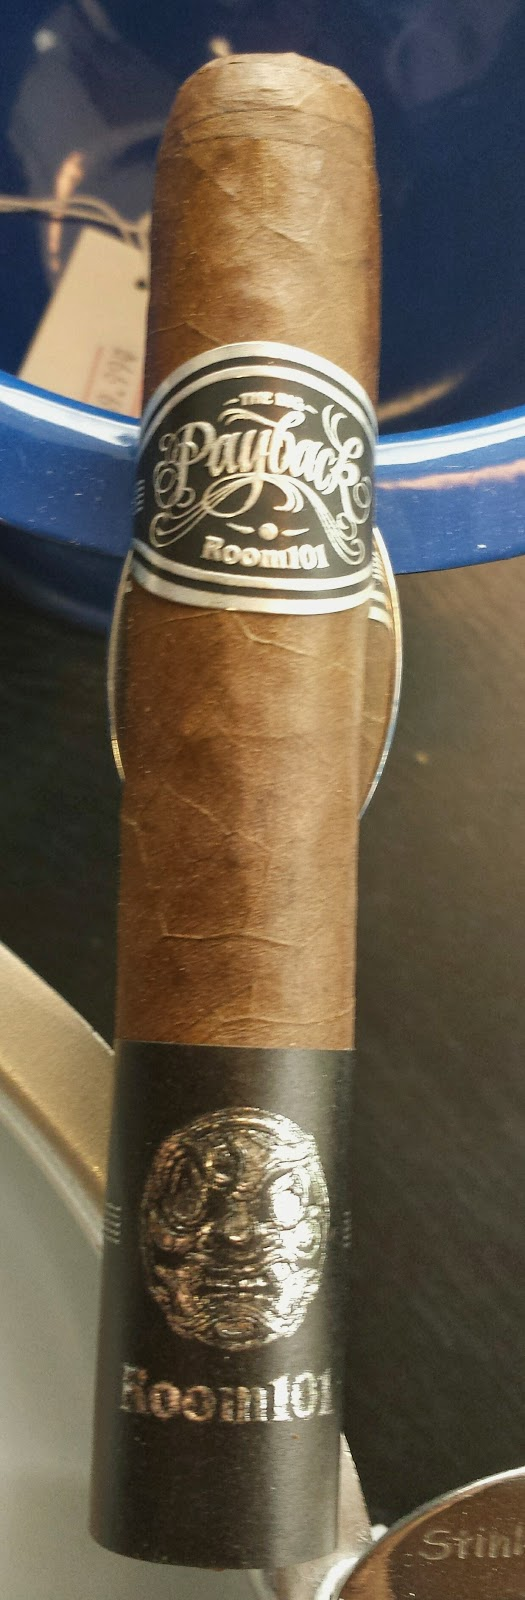 Room 101 The Big Payback Robusto